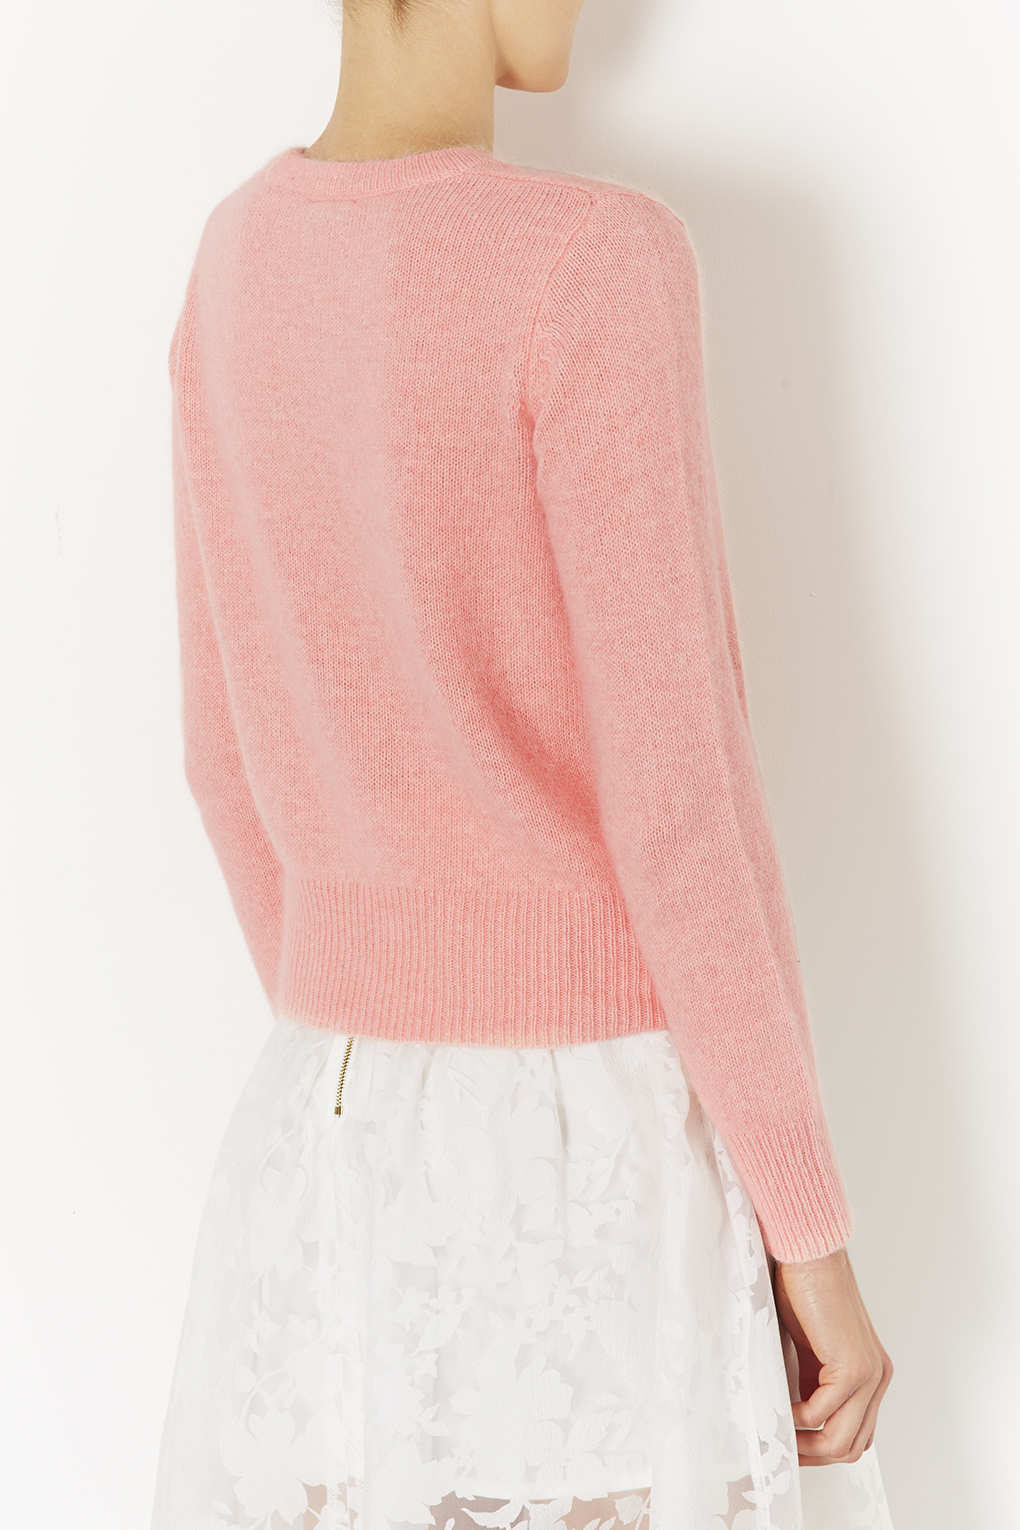 Topshop Knitted Angora Fluffy Jumper in Pink | Lyst